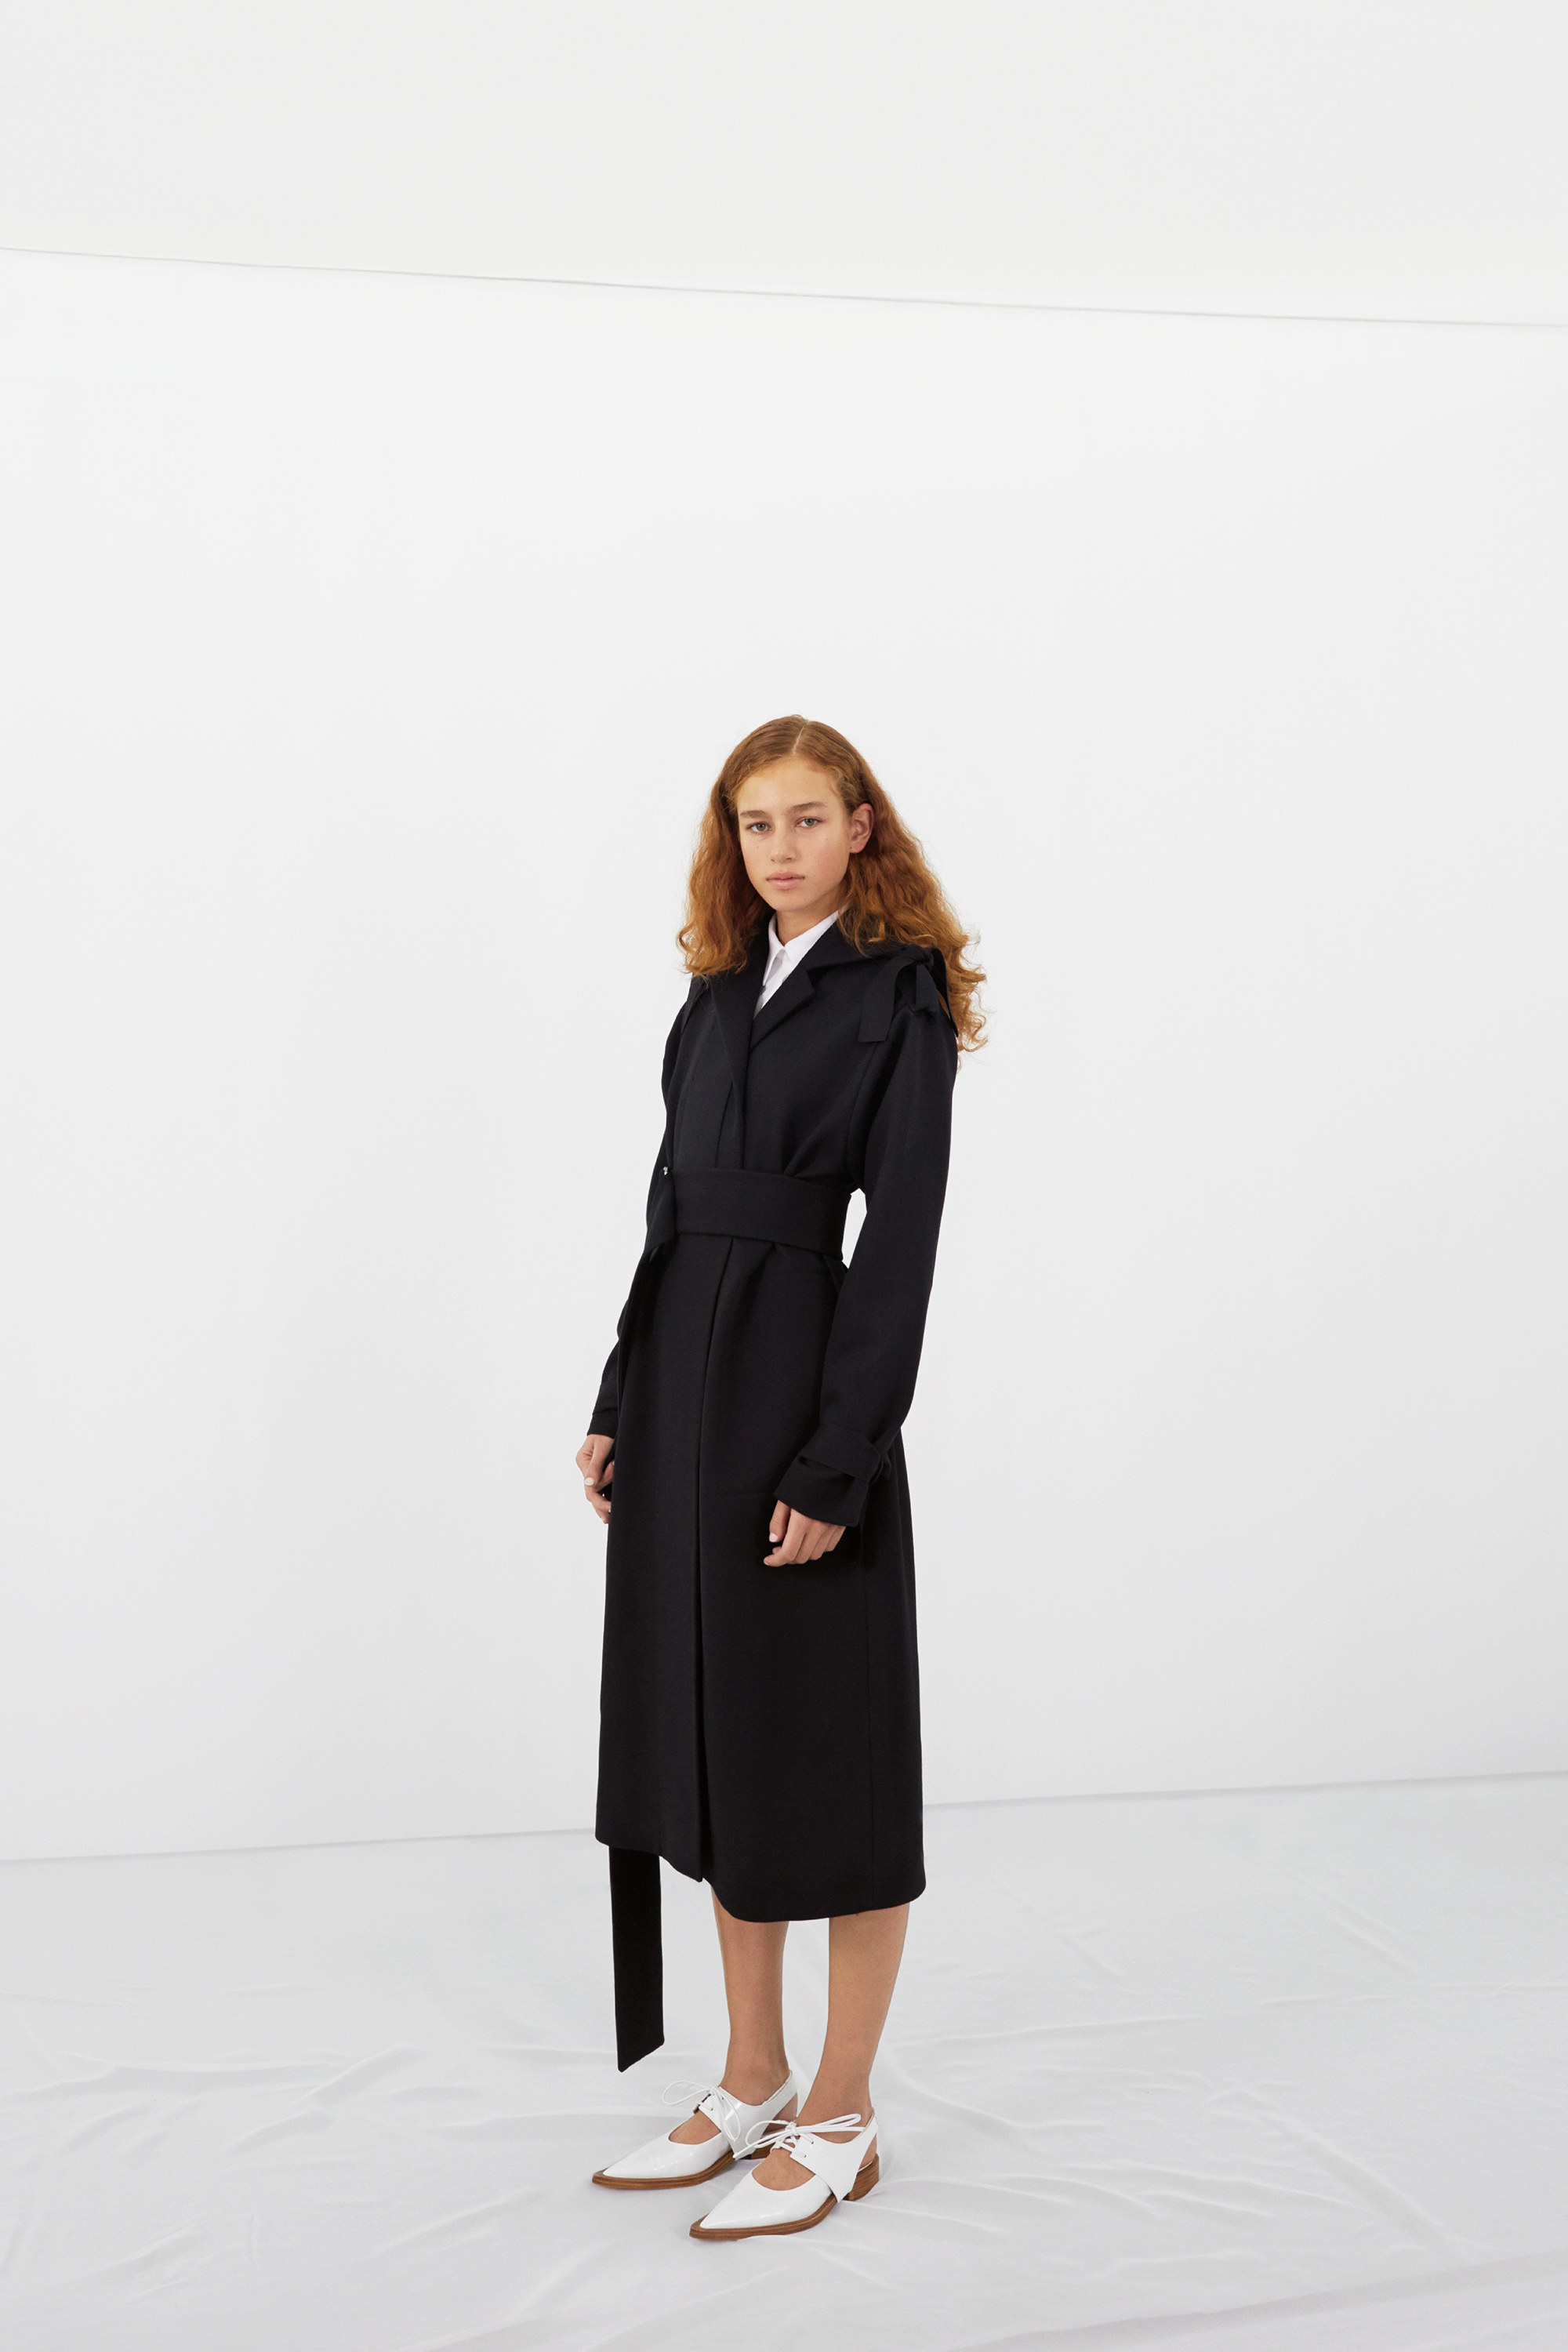 victoria-beckham-pre-fall-2016-lookbook-01.jpg